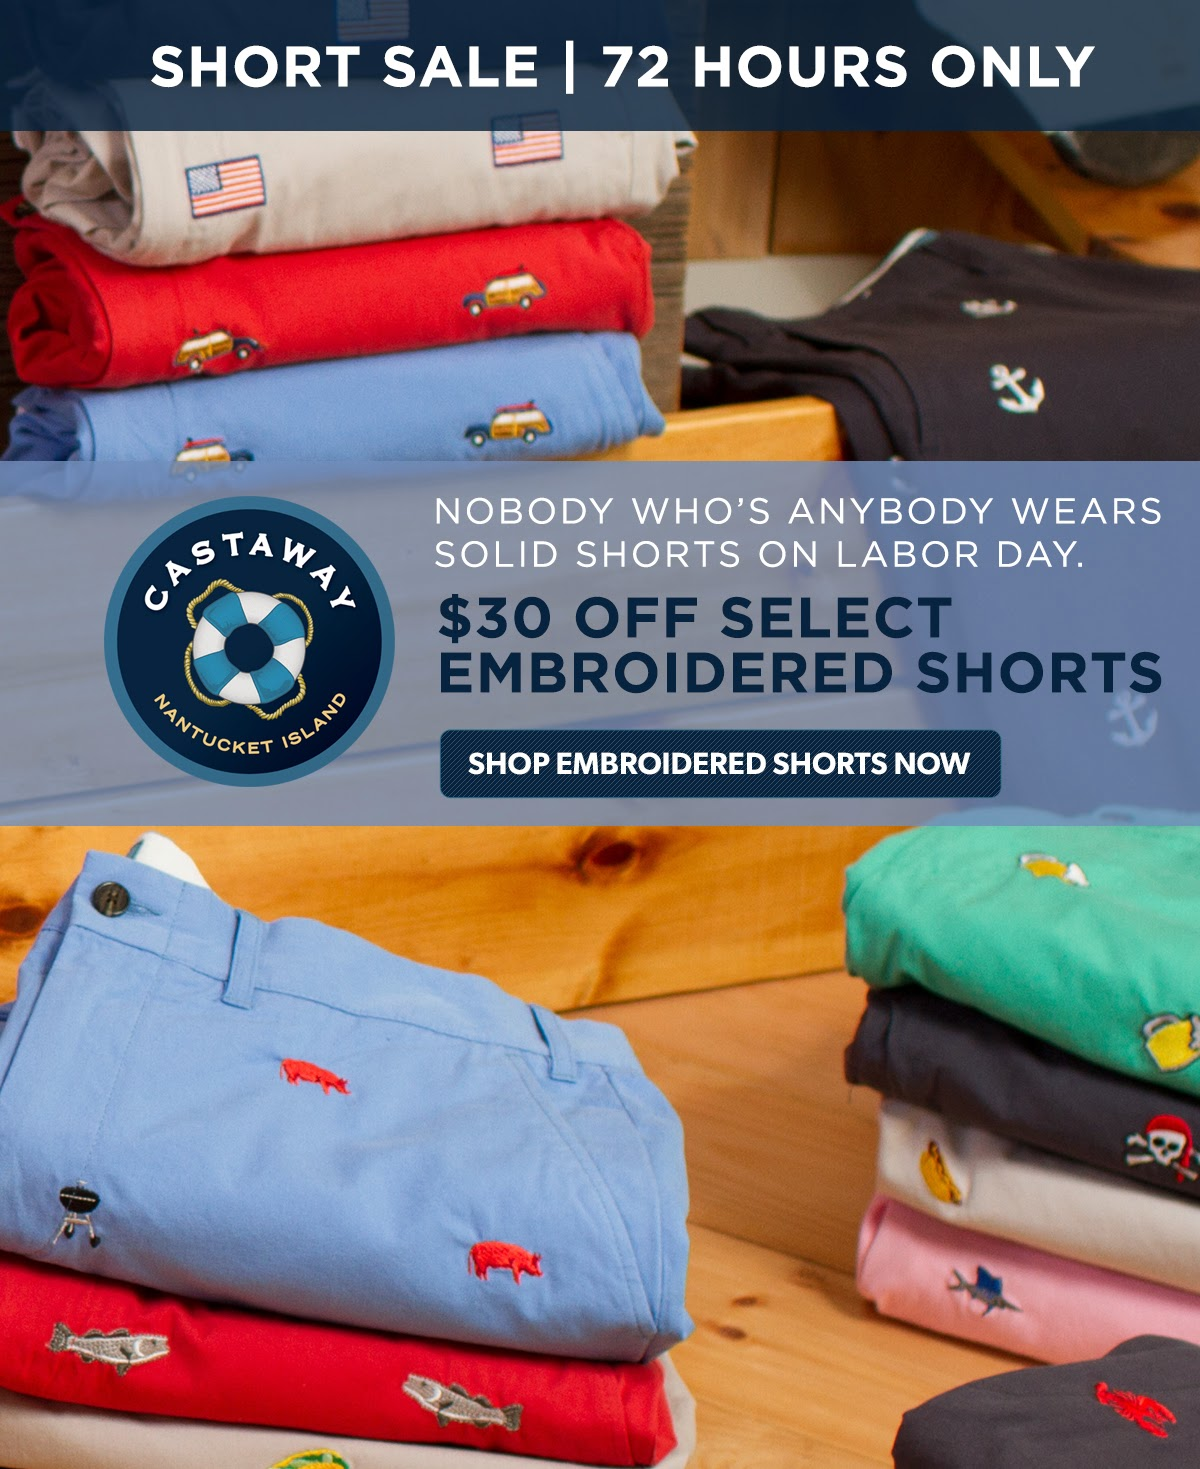 Castaway Clothing Critter/Embroidered Shorts FLASH SALE!